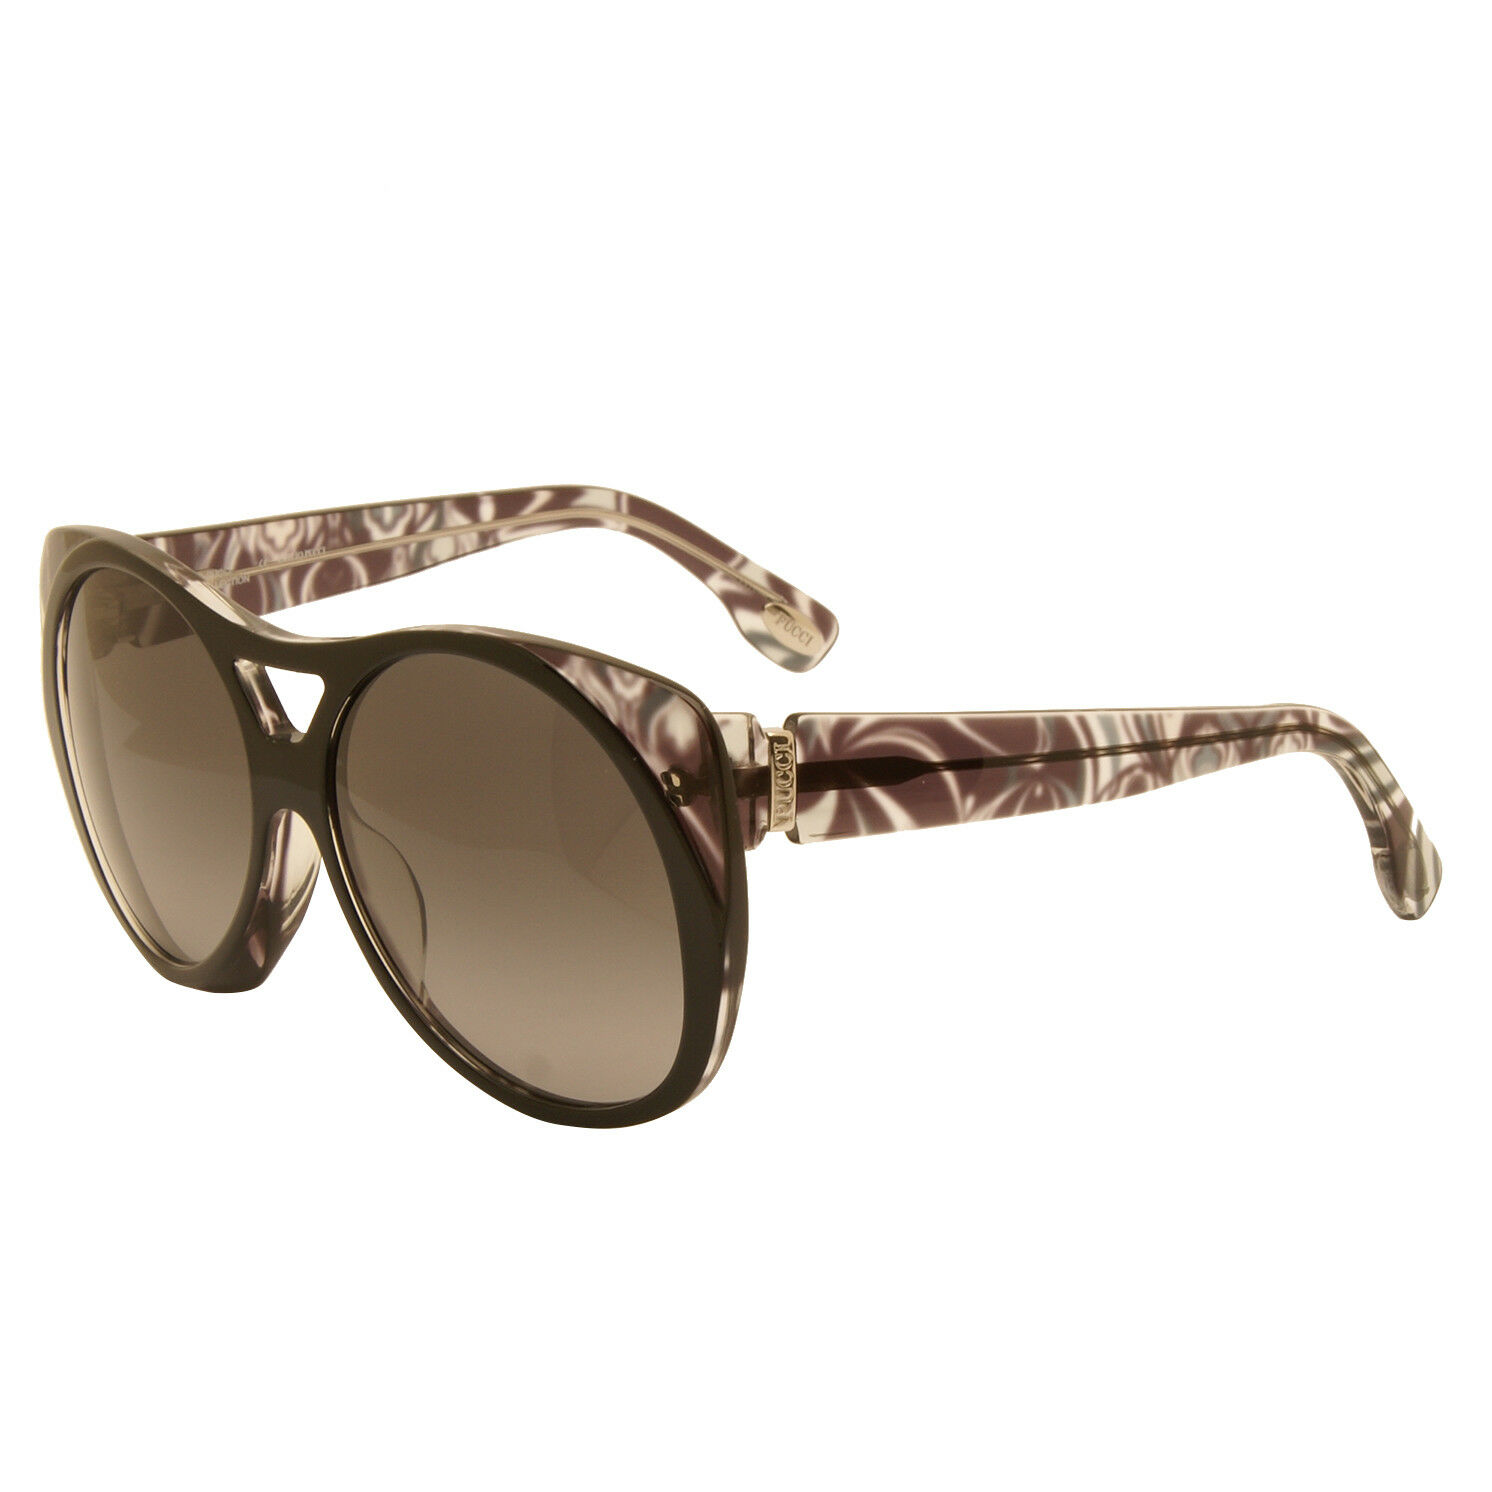 Emilio Pucci - Black and Grey Print Round Oversized Style Sunglasses with Case